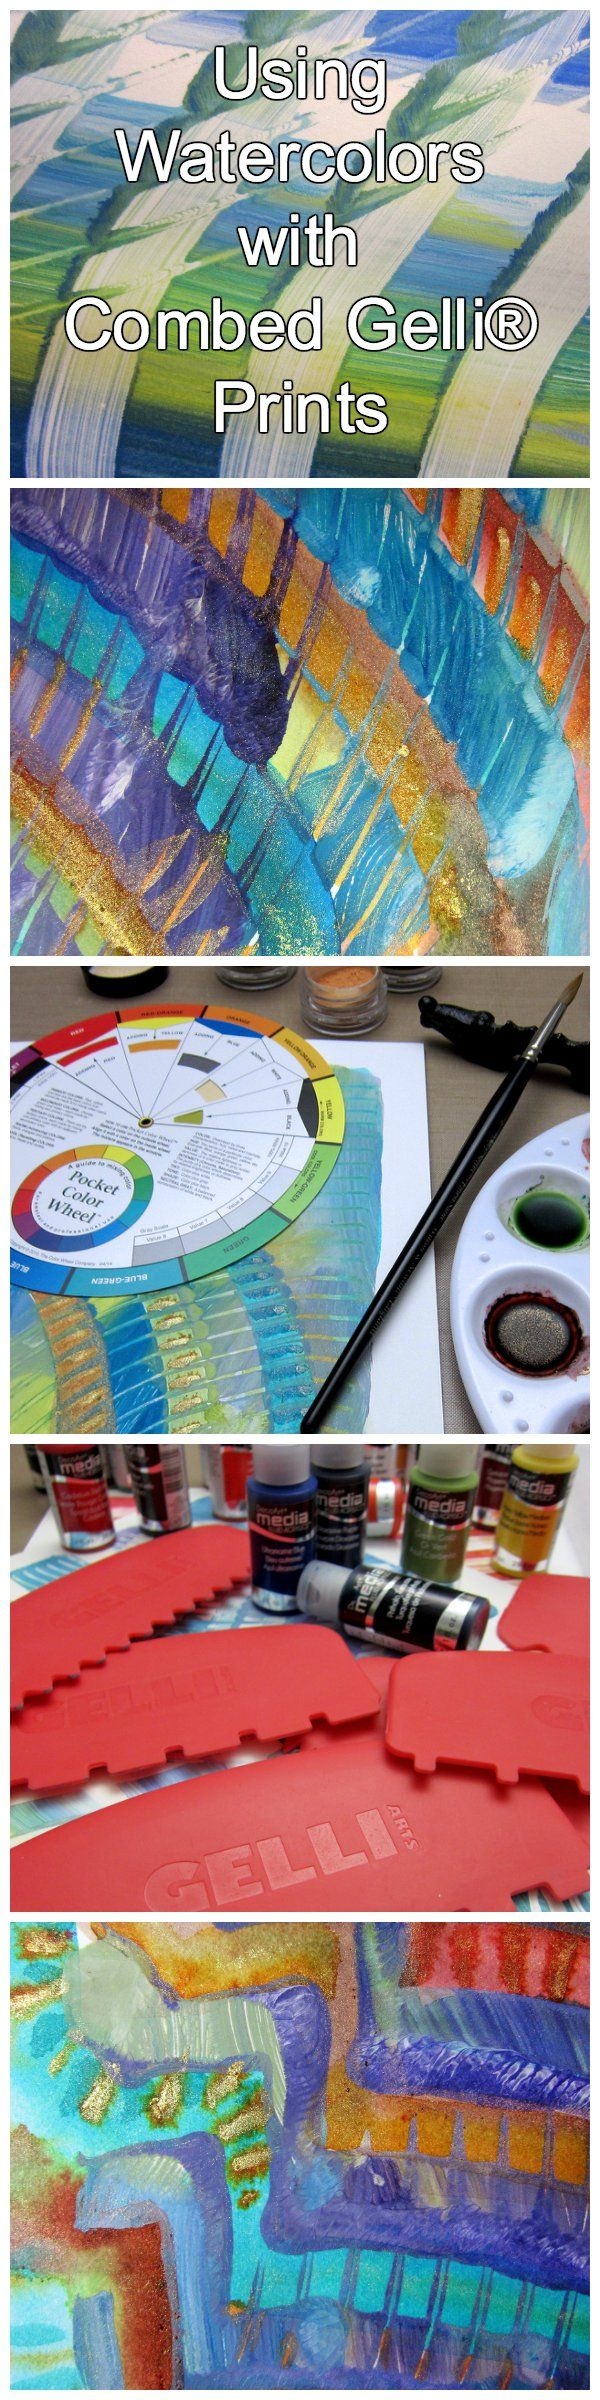 Printing with Gelli Arts: Rather than using traditional watercolors (although they work beautifully)—I'm experimenting with some incredible pigment powders from Lindy's Stamp Gang, called 'Magicals'. They're named so perfectly—these pigments contain mica, so they sparkle and shine! For watercolor effects, simply add water and mix the desired intensity of each color. The pale powders morph into rich, metallic colors when water is added. Magic! And perfect for adding pizzazz to a print!